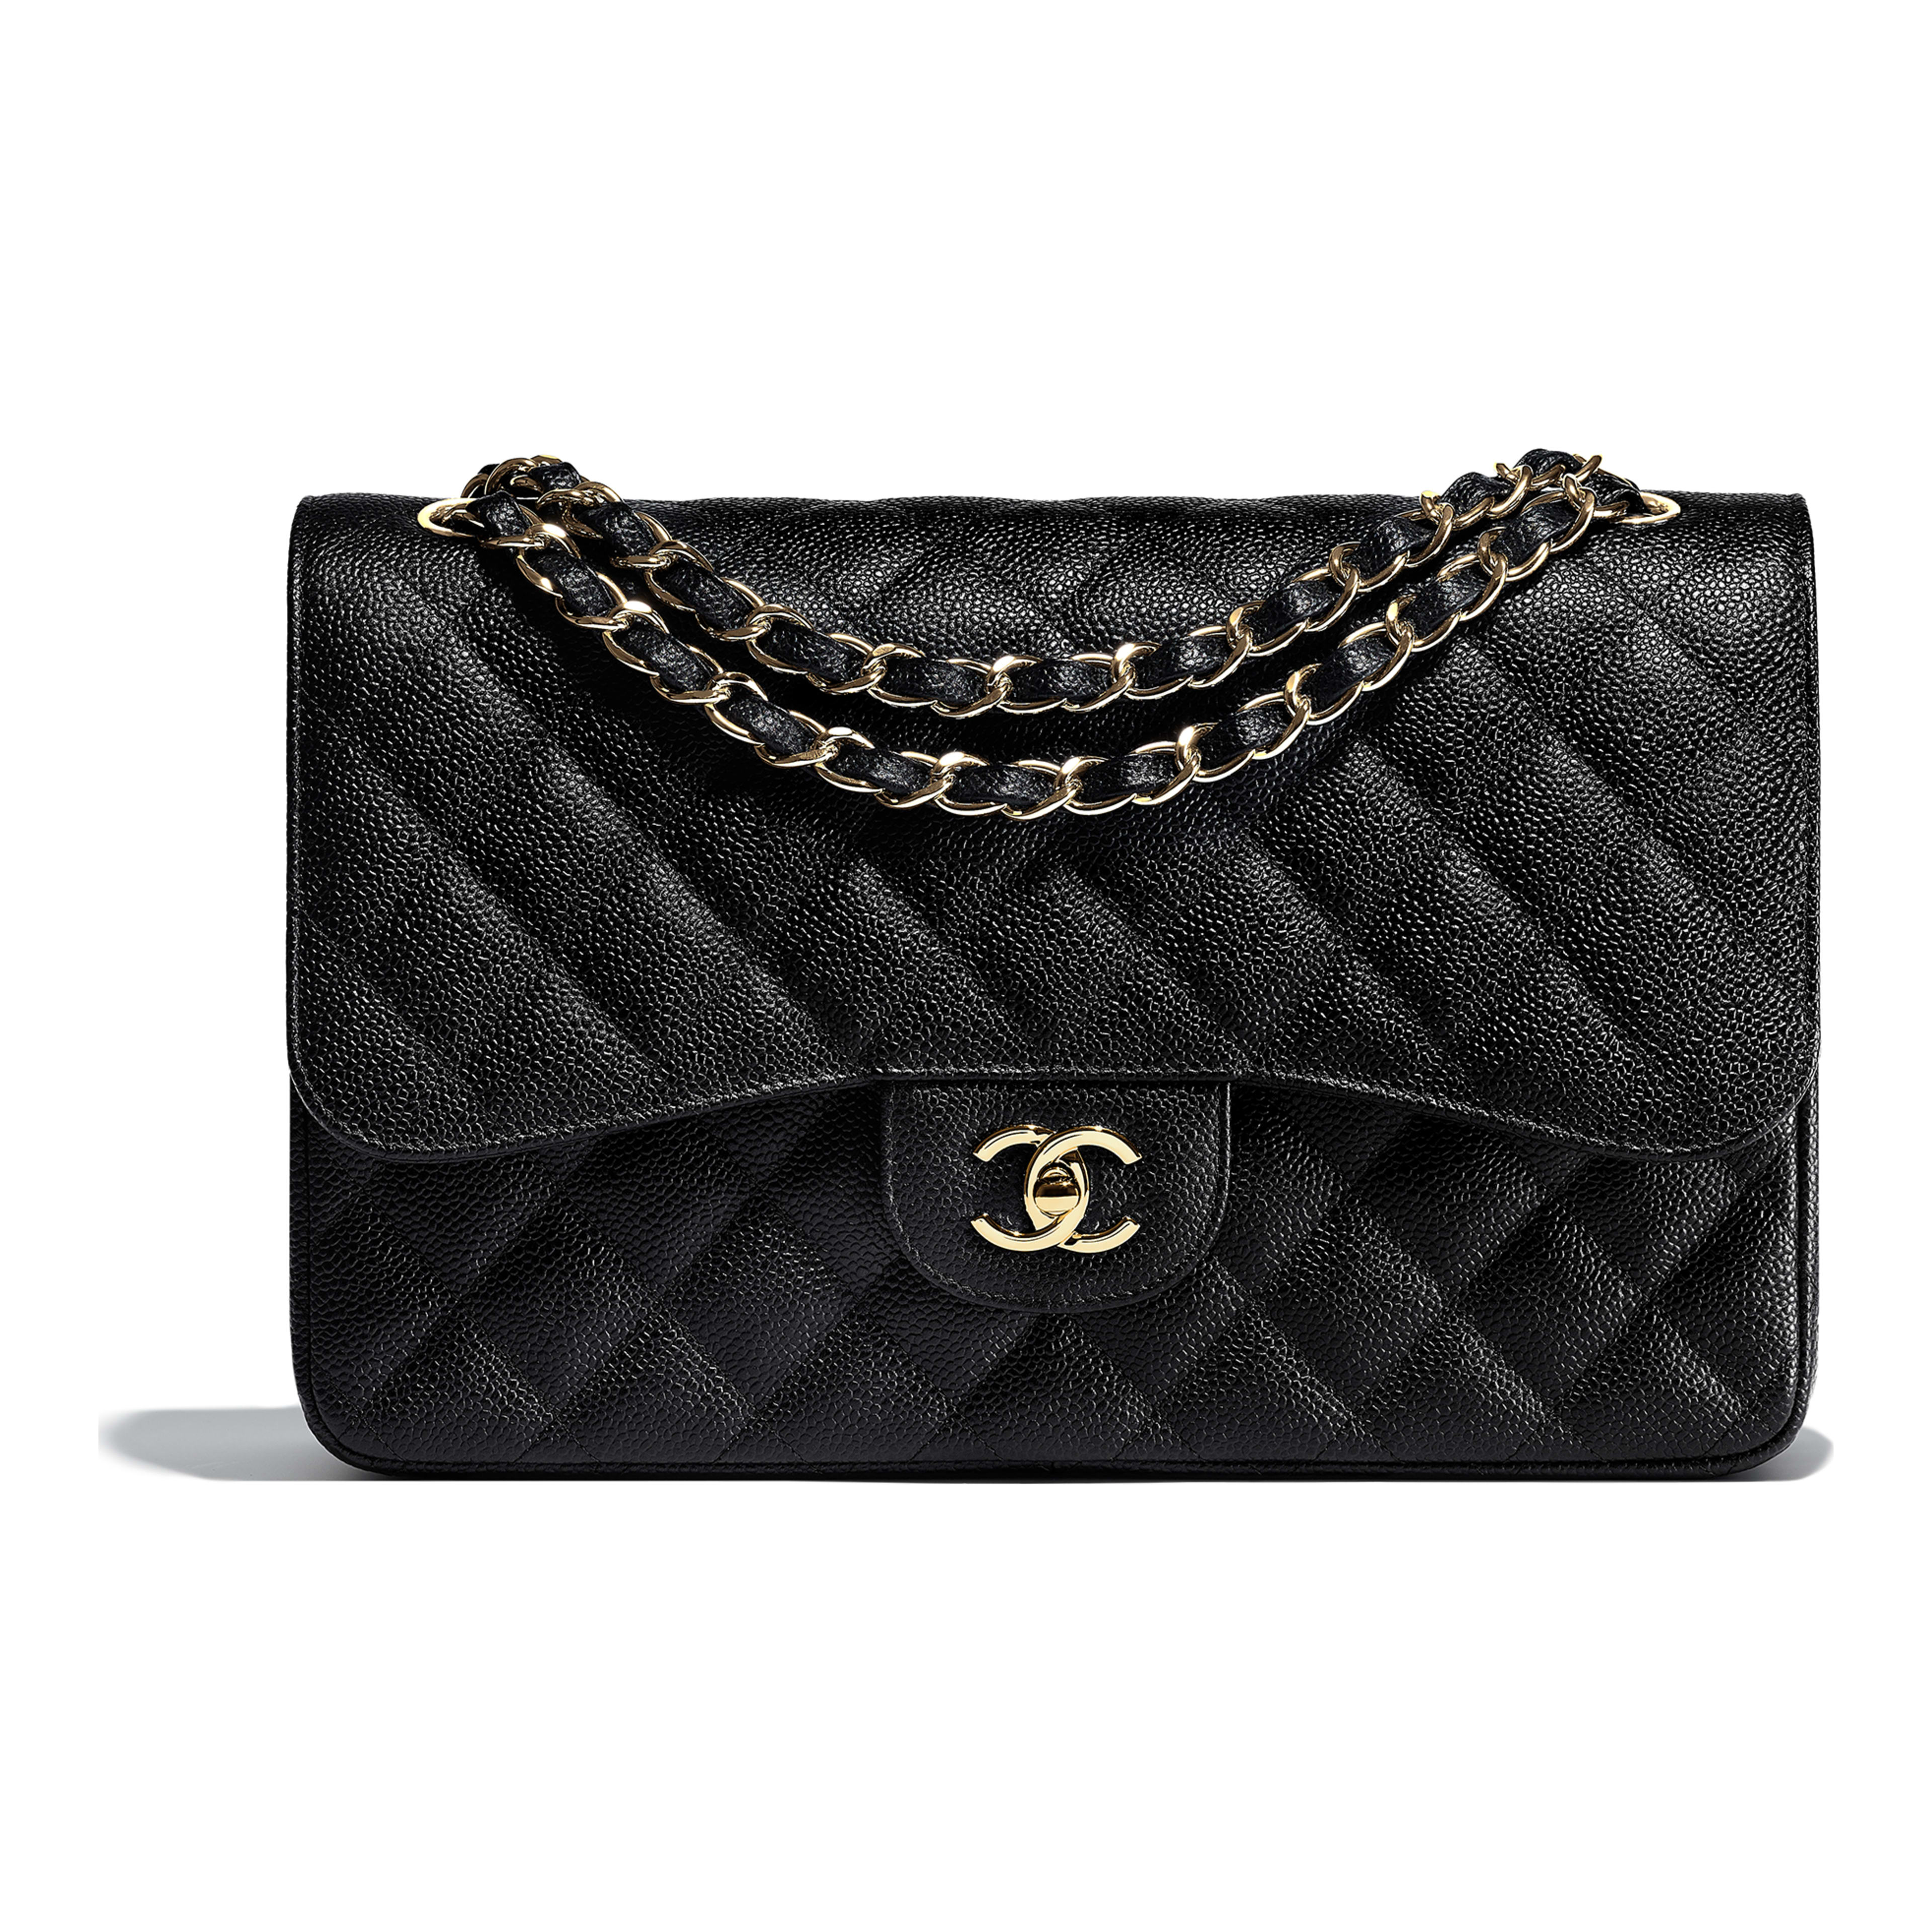 Grained Calfskin Gold Tone Metal Black Large Classic Handbag Chanel